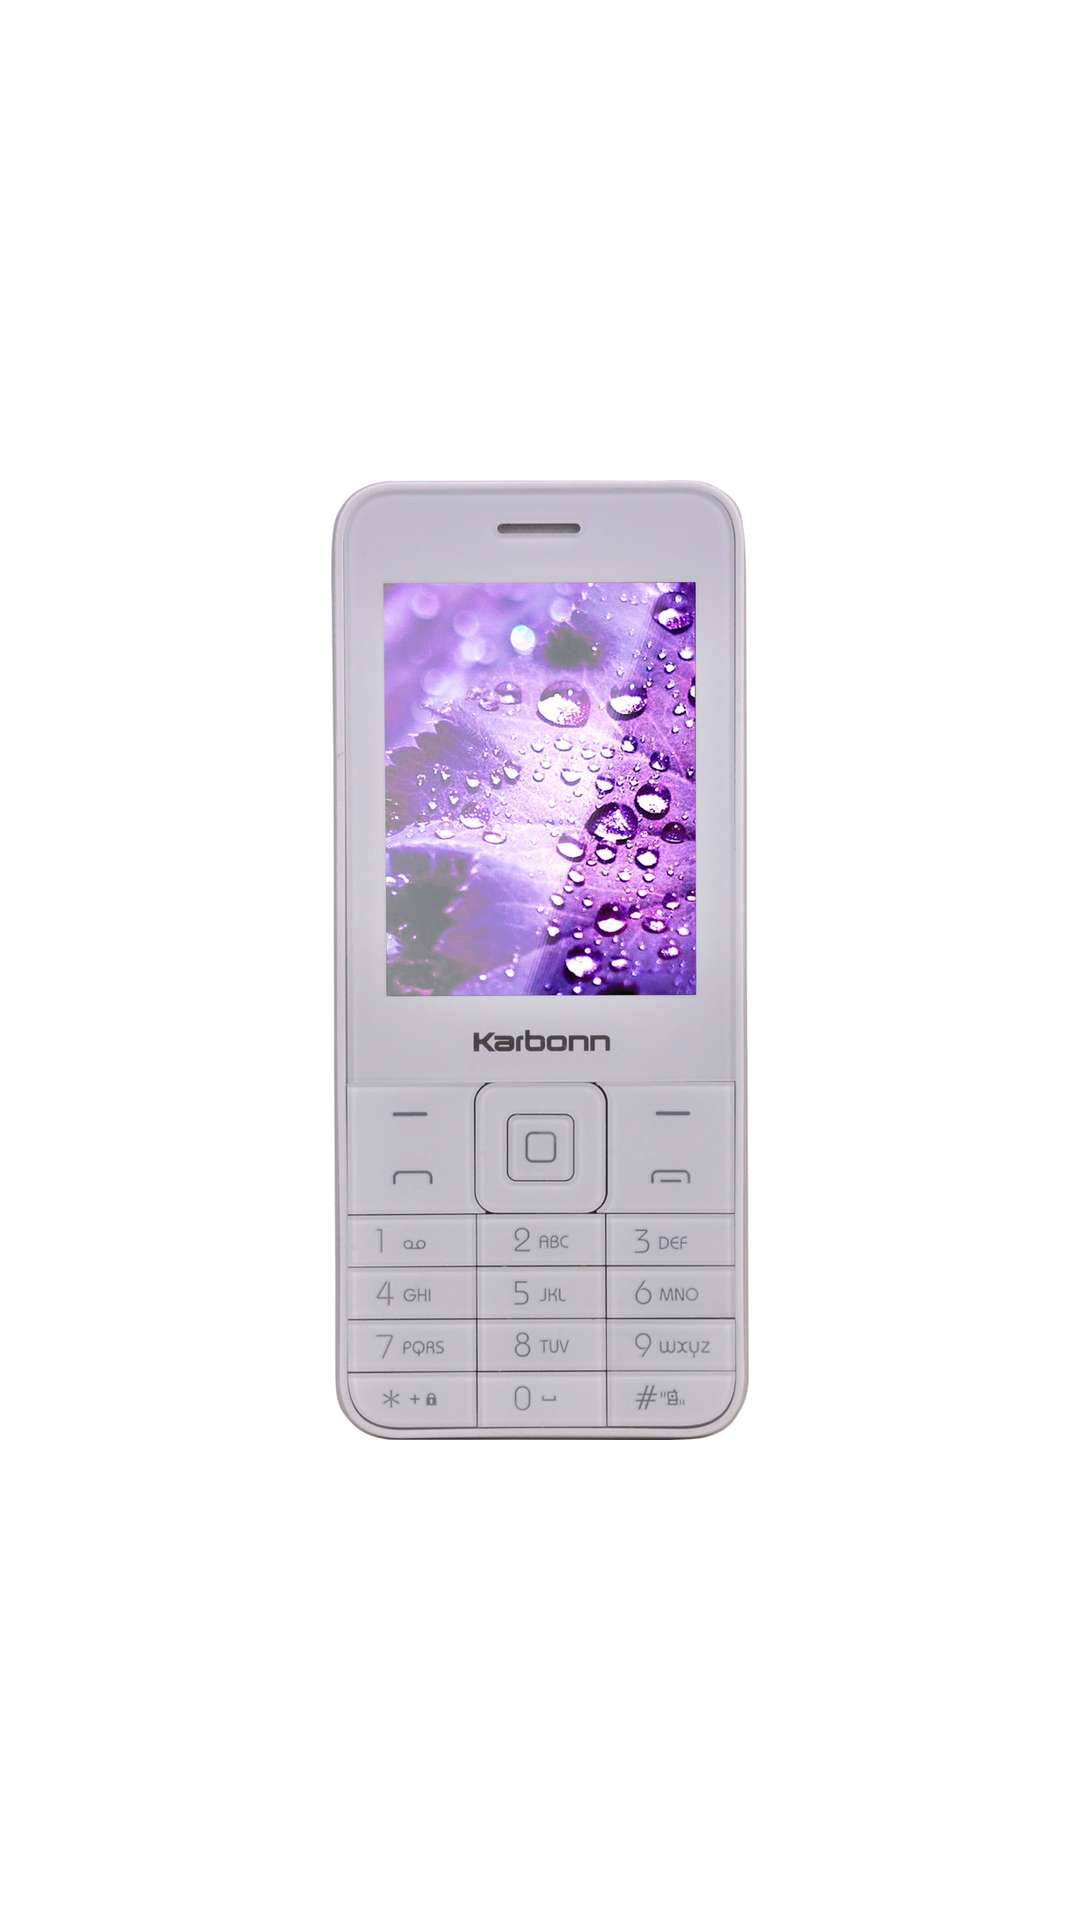 Karbonn K-Phone 1 (White And Silver)